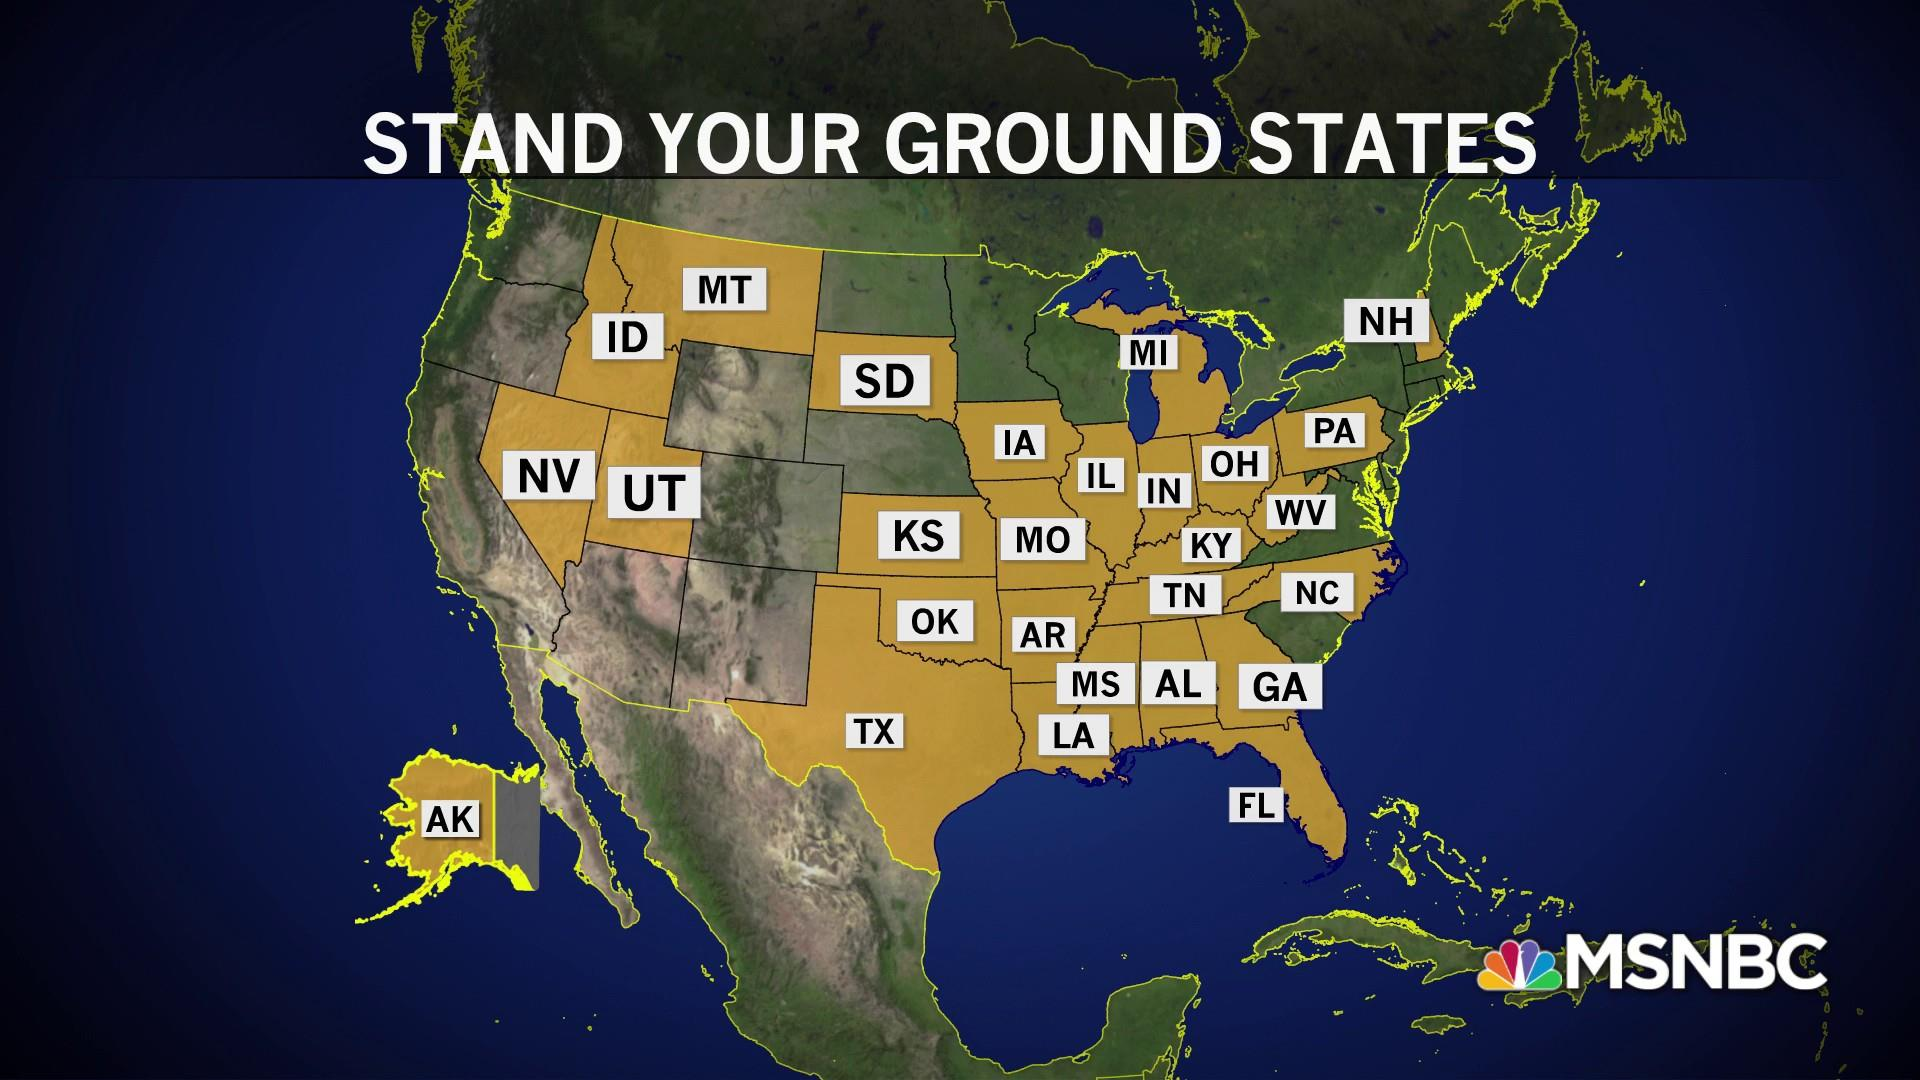 Greer: 'Stand Your Ground' is for whites only